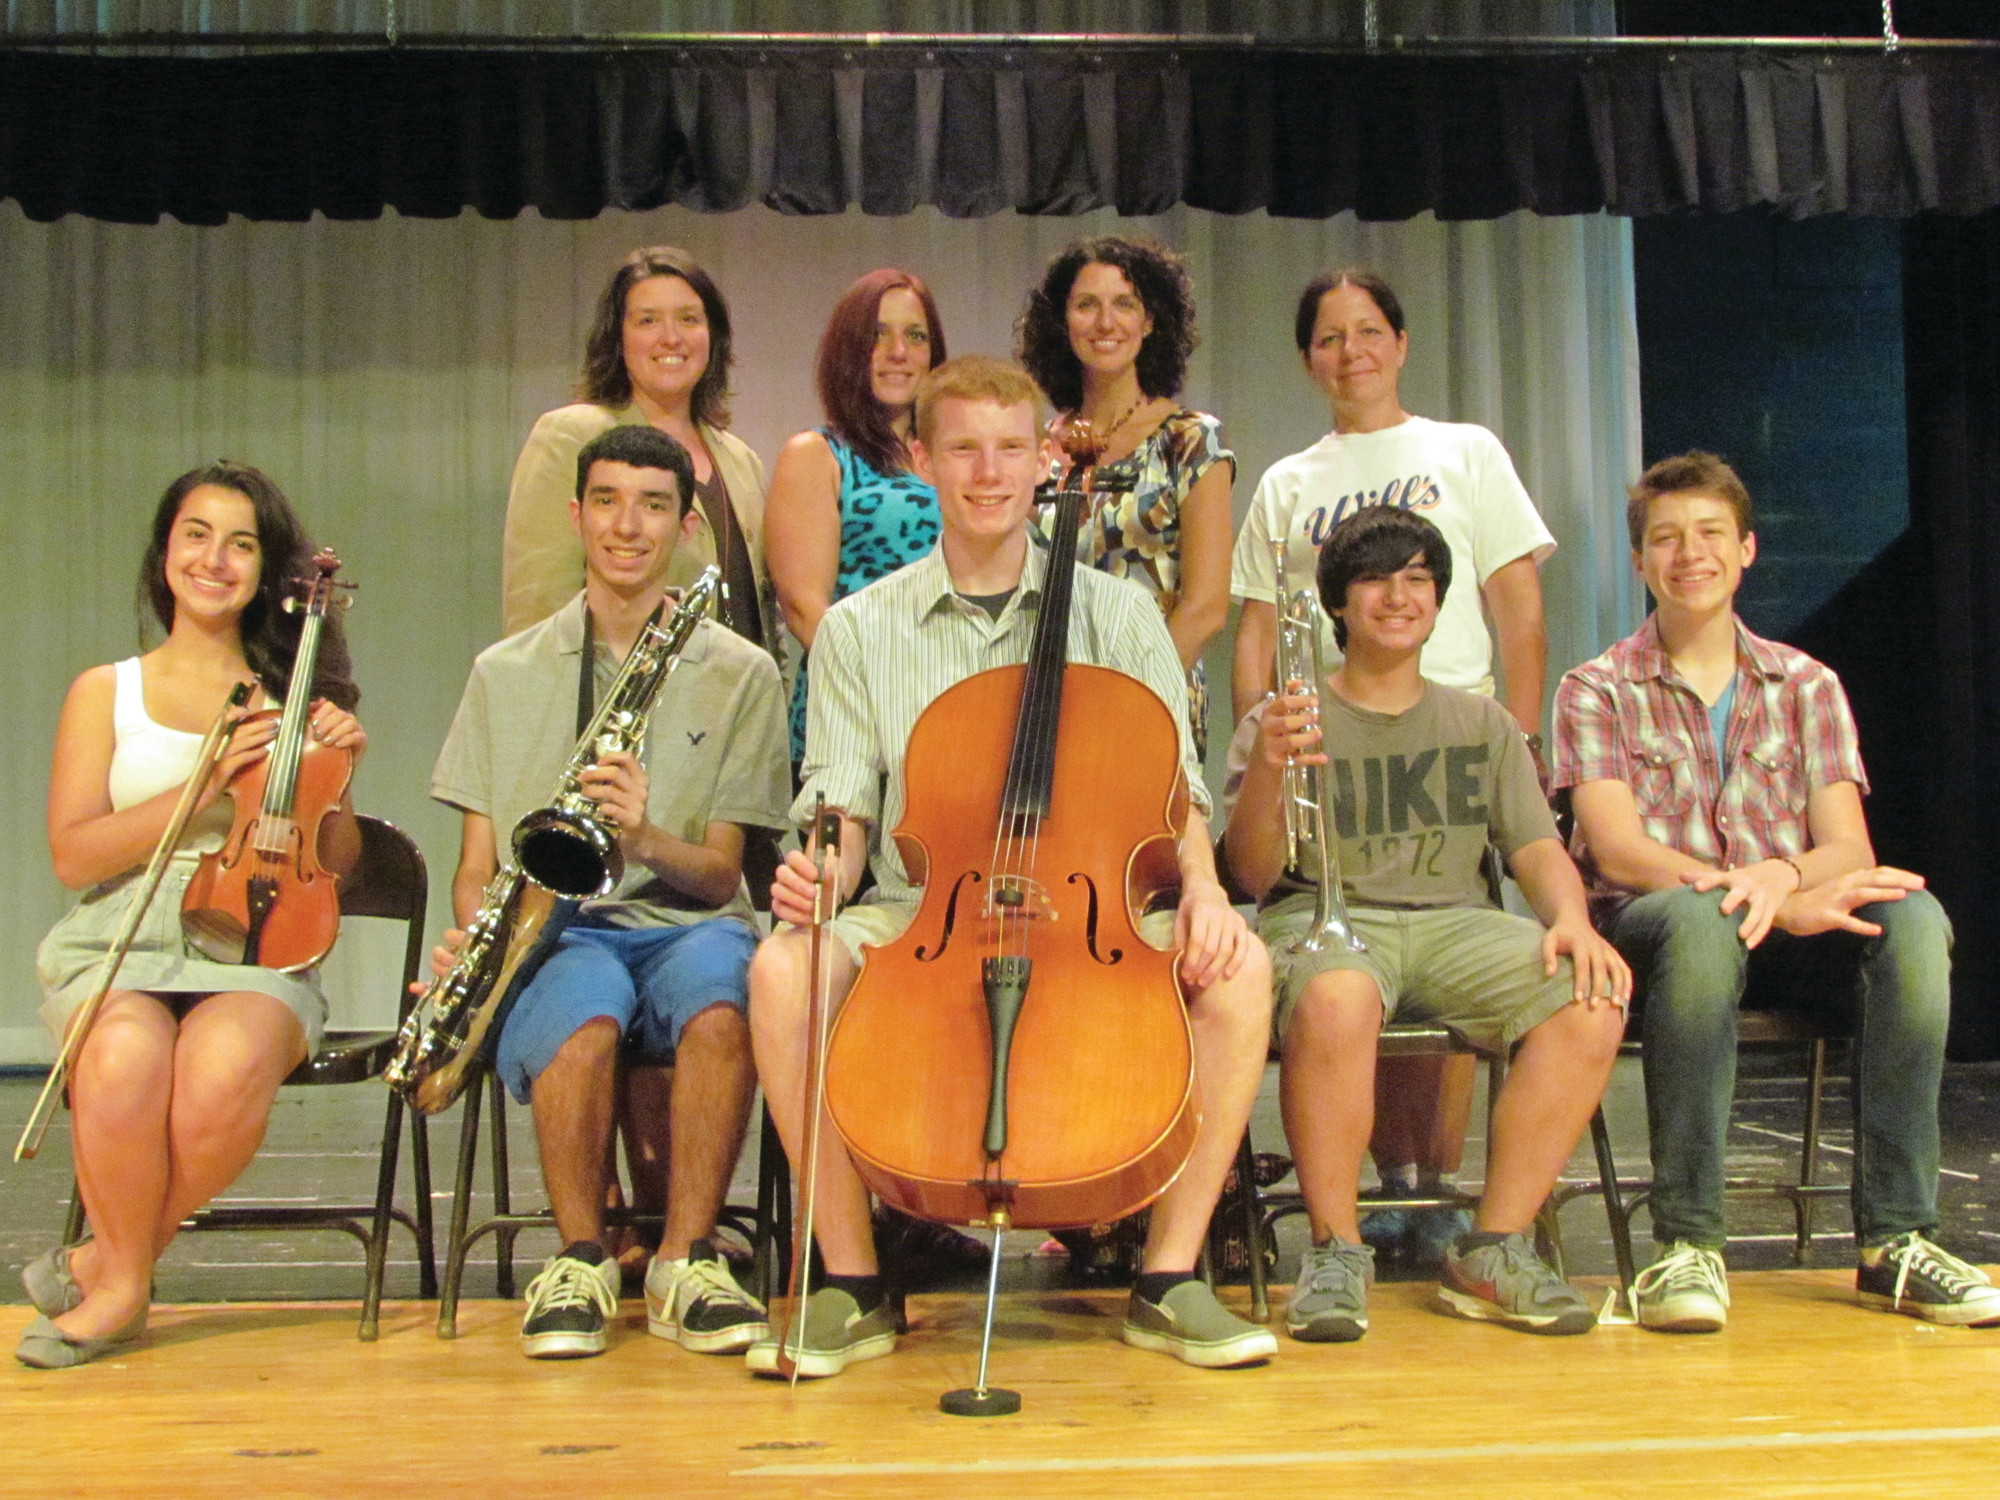 STAR MUSICIANS: Wantagh High School students, from left, Julianna Nerone, Mark Sales, Andrew Bloniarz, Matthew Saltzman and Patrick Constant have been selected as NYSSMA All-State musicians and are pictured with (back, from left) chorus teacher Jennifer Alessi, orchestra teacher Dina Langer, Supervisor of Music and Art Kelly Good and band teacher Mindy Dragovich.